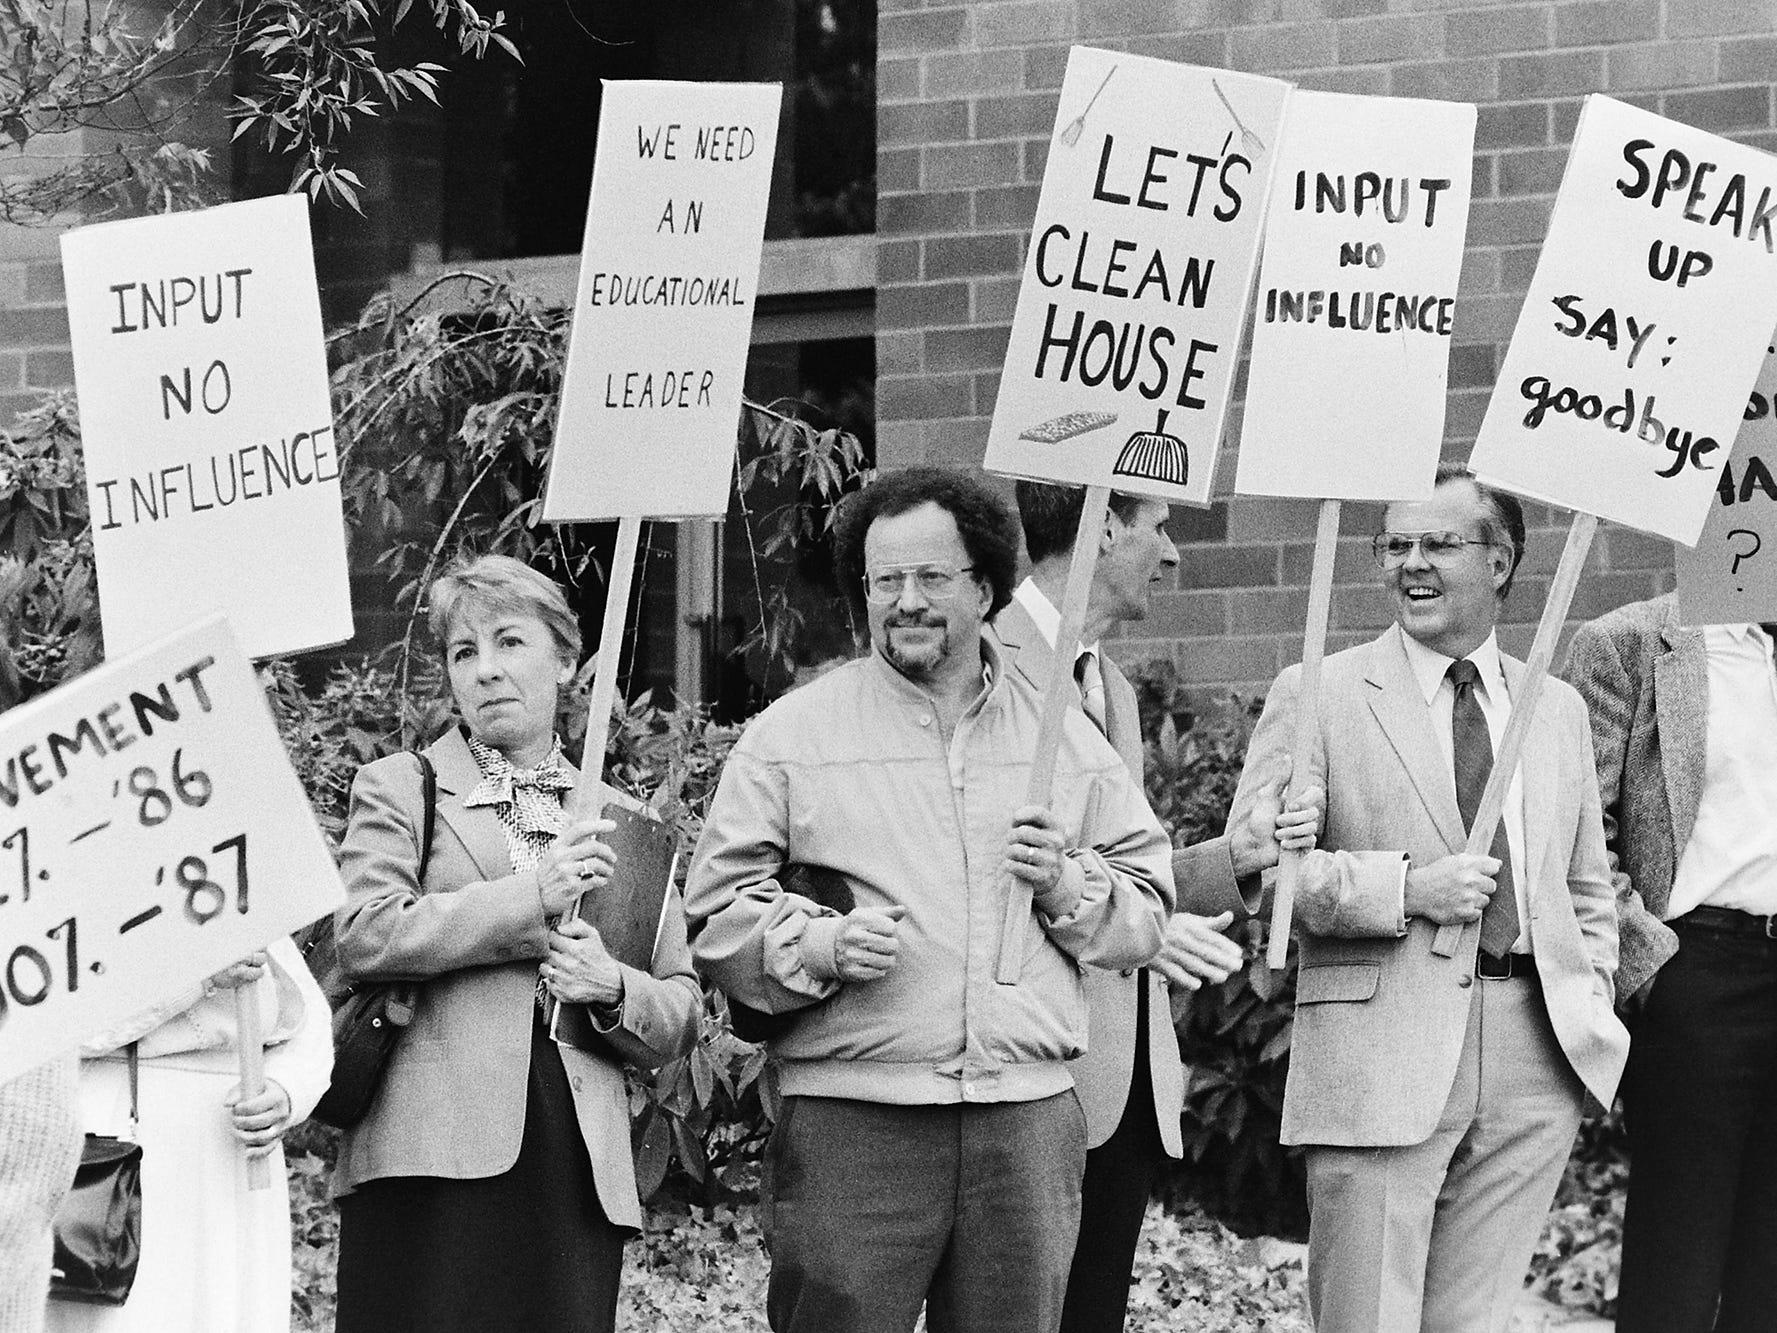 05/28/87